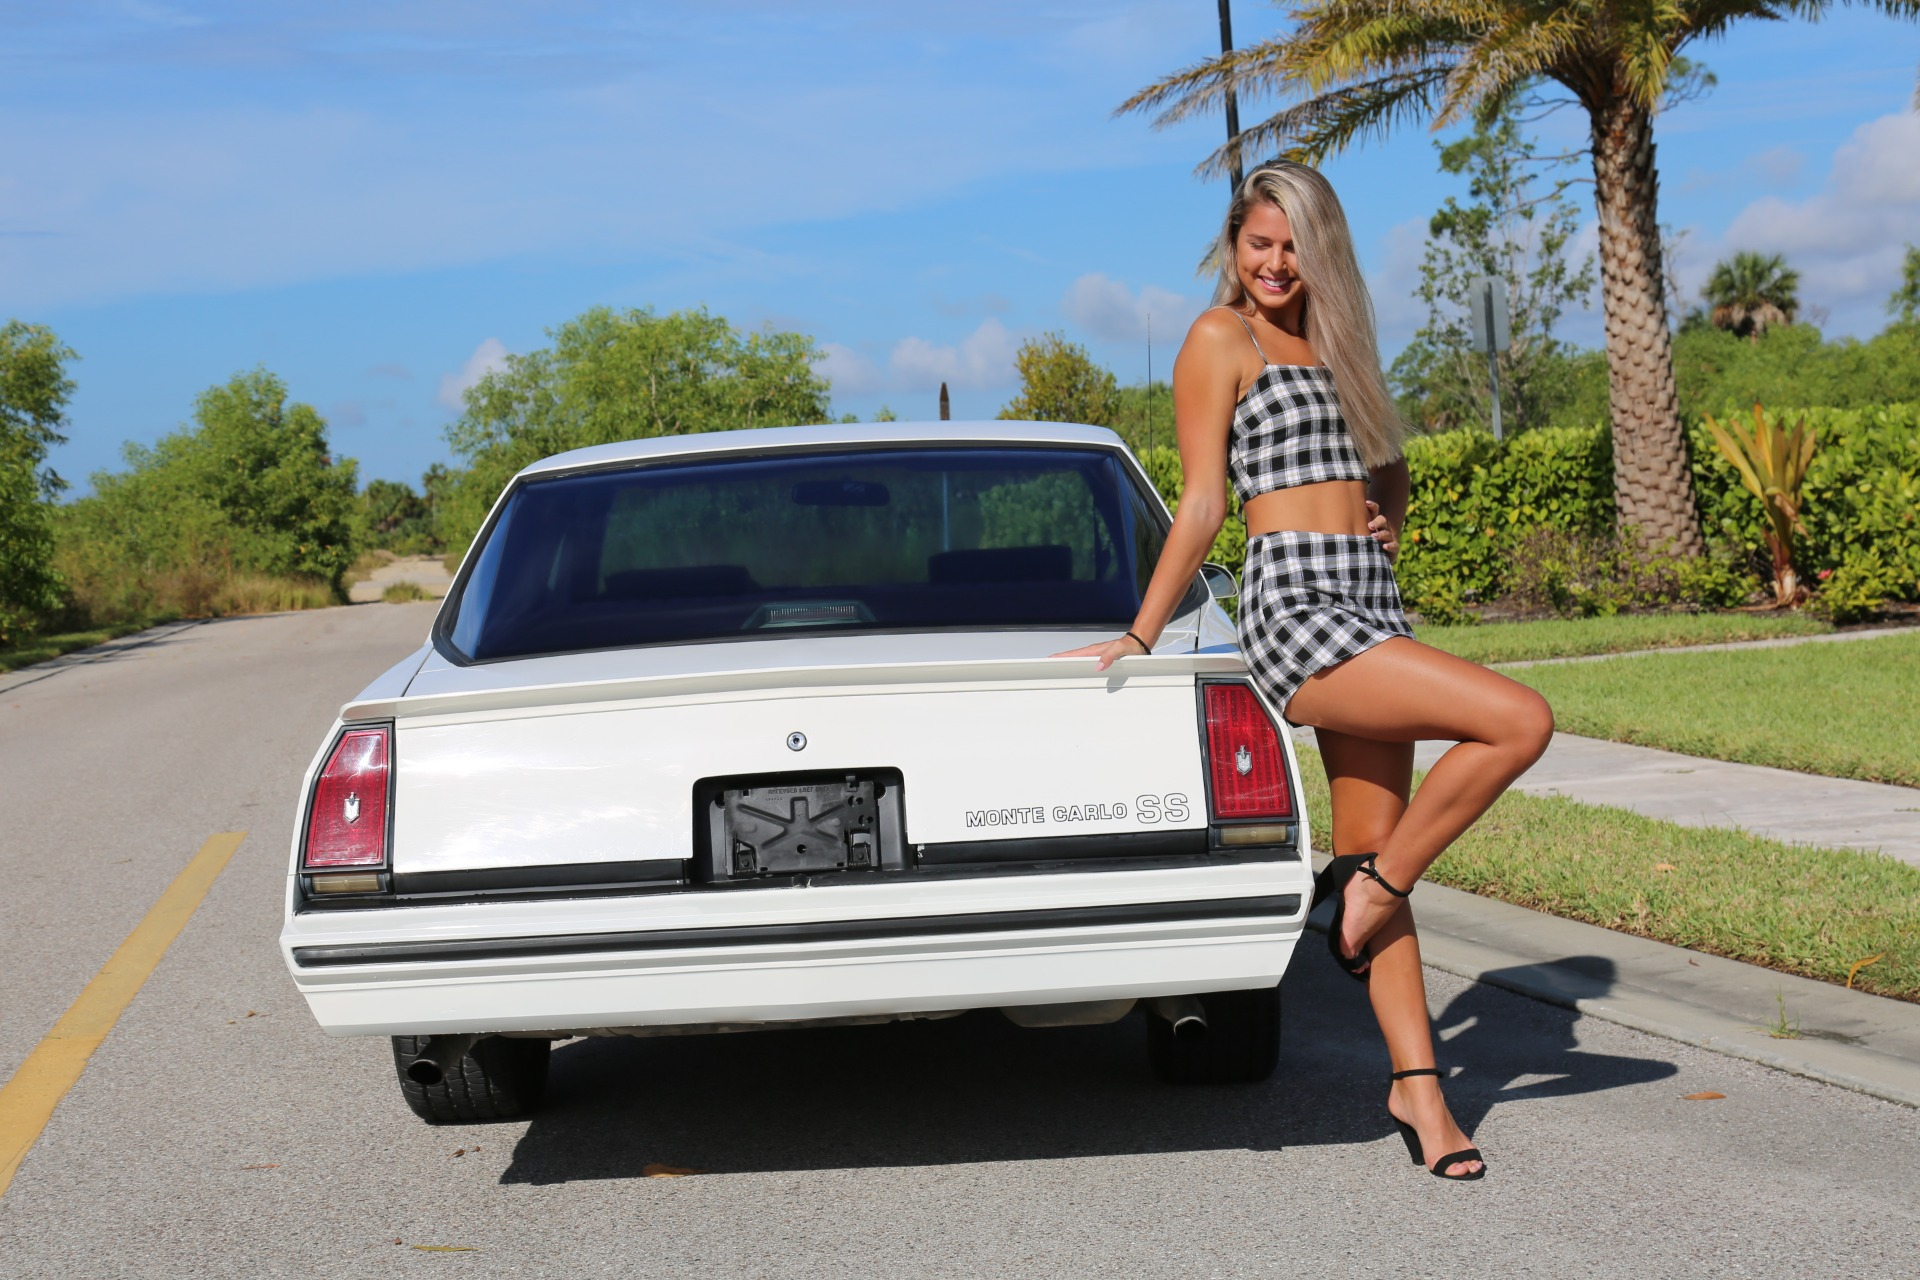 Used 1986 Chevrolet Monte Carlo SS Aero for sale $13,000 at Muscle Cars for Sale Inc. in Fort Myers FL 33912 3